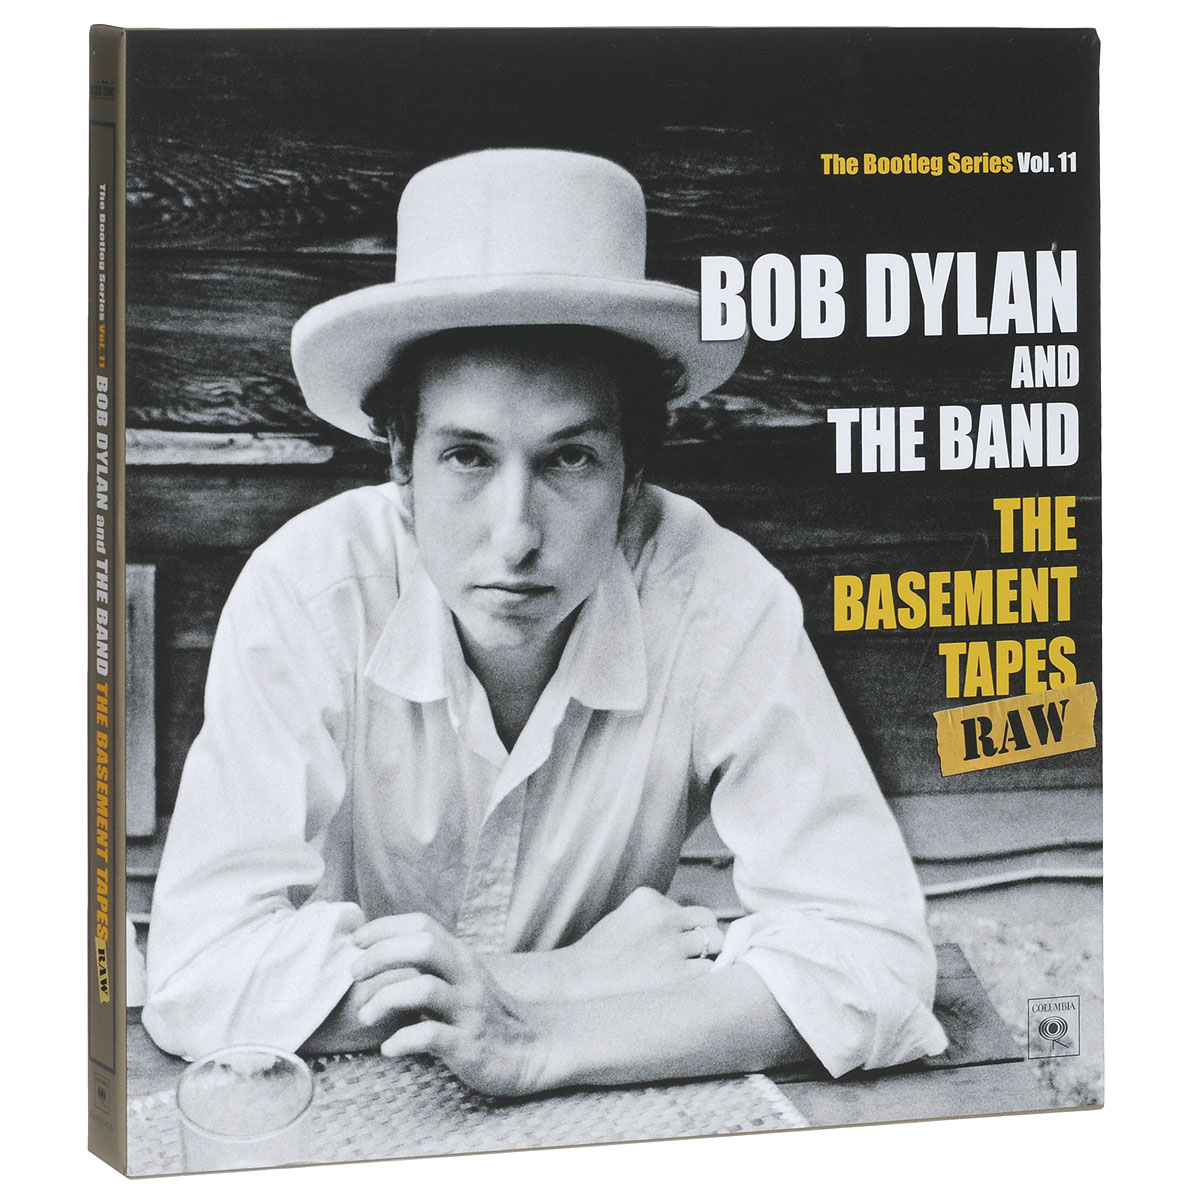 Bob Dylan And The Band Bob Dylan and The Band. The Bootleg Series Vol. 11: The Basement Tapes Complete. Special Deluxe (2 CD + 3 LP) the complete crumb comics vol 8